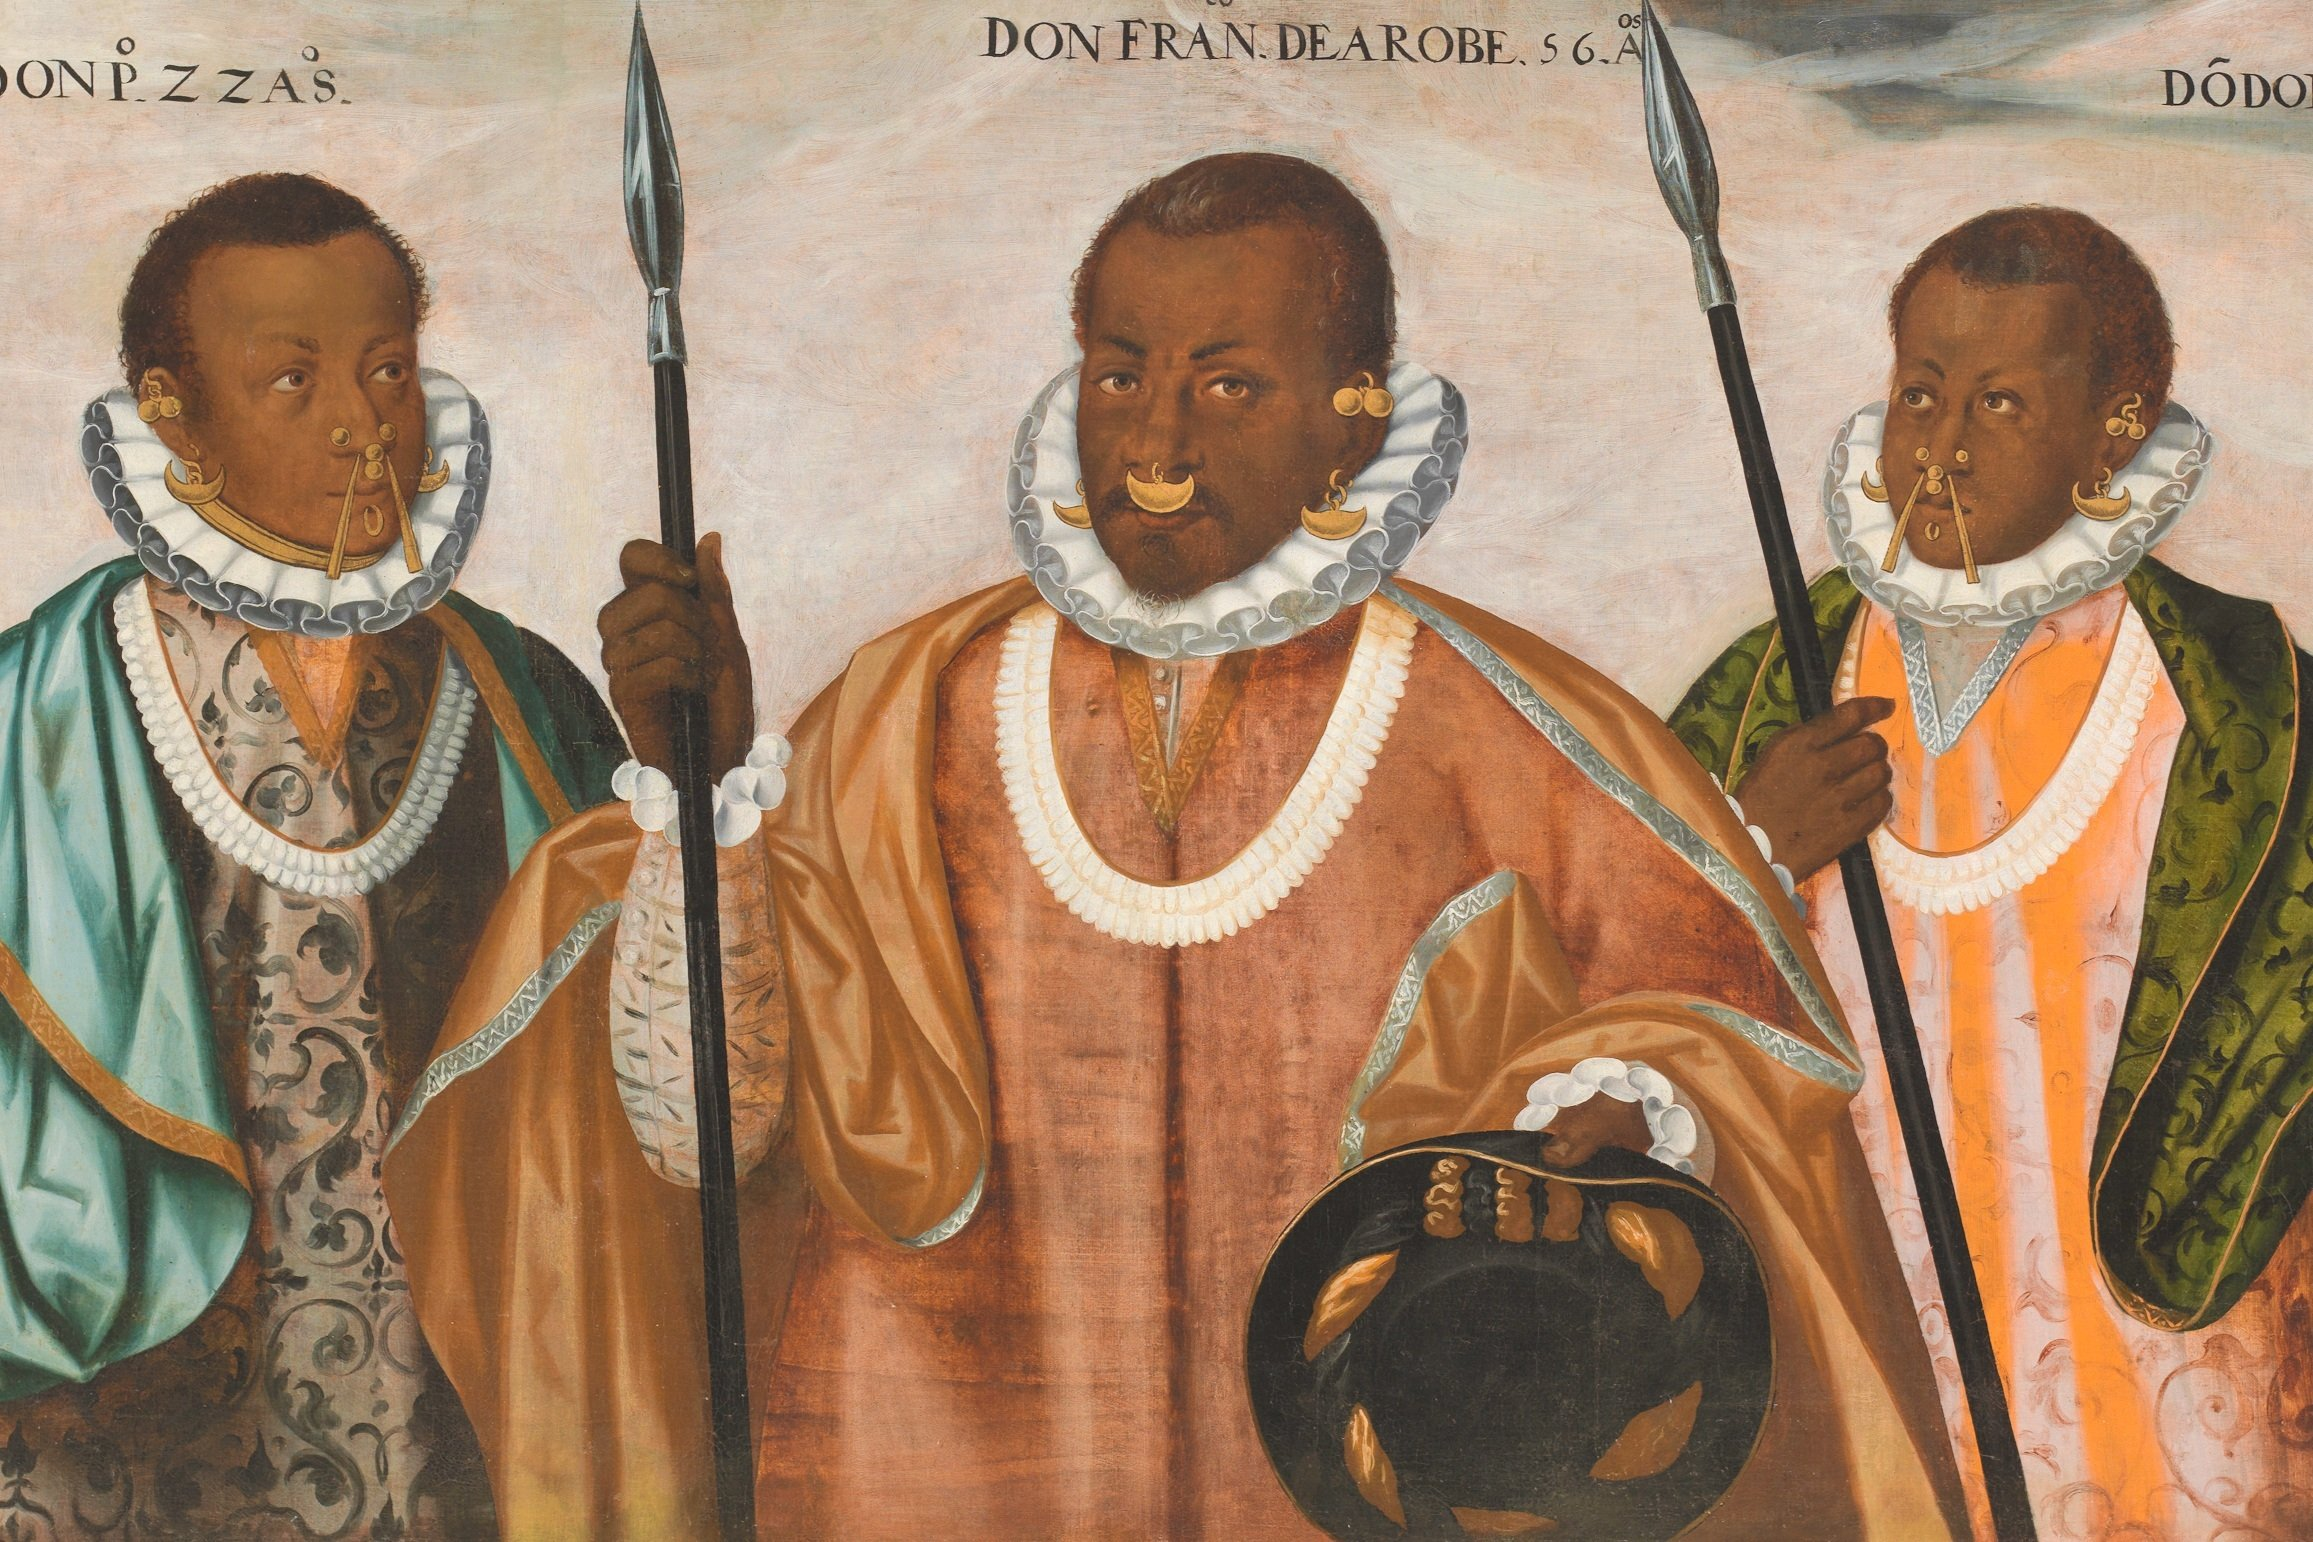 A late 16th century painting of a trio of Maroon leaders.